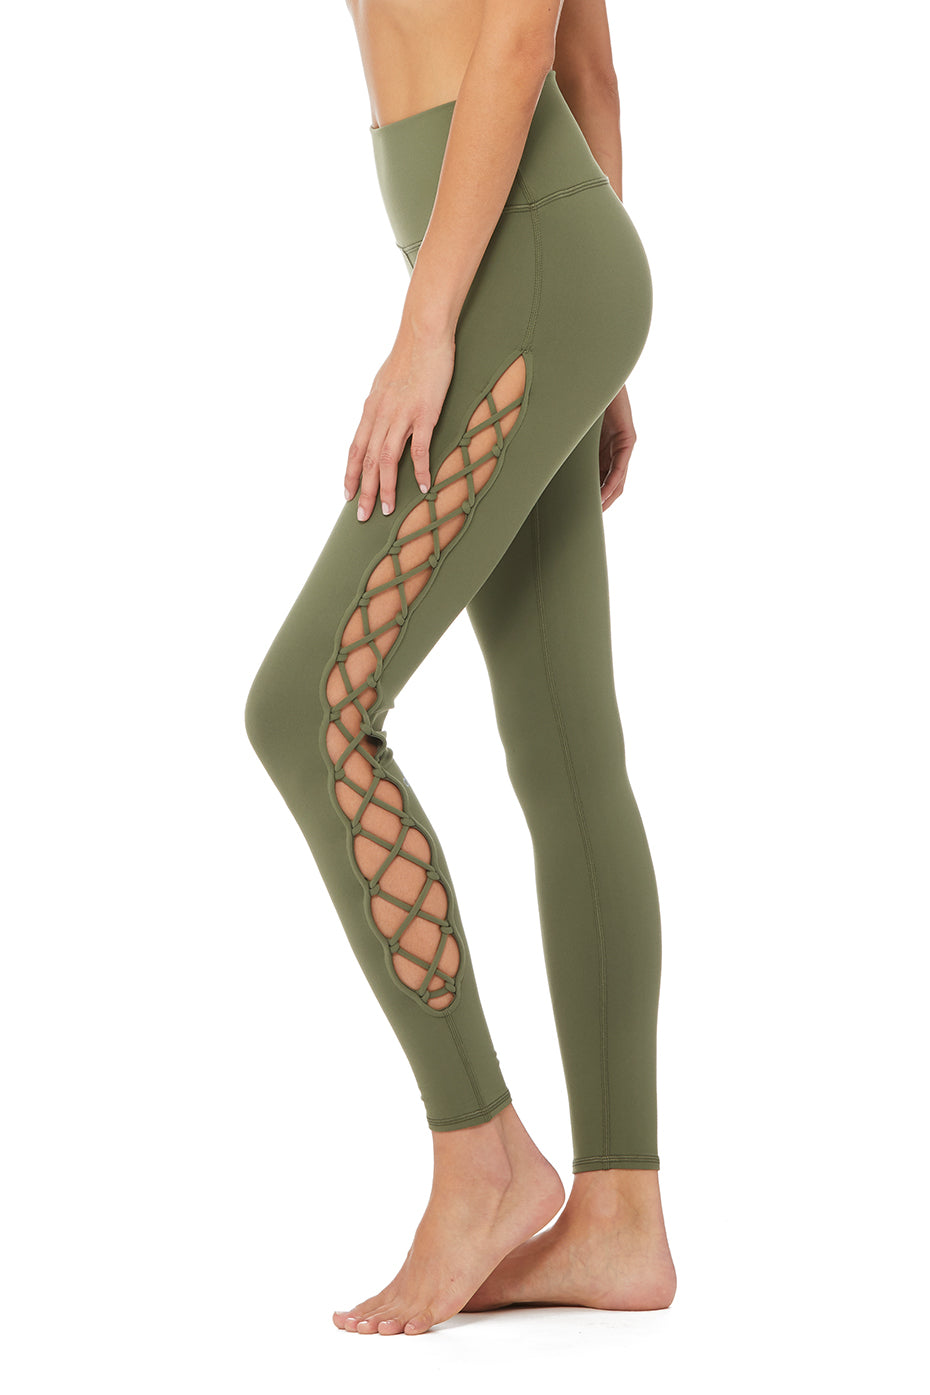 Interlace Legging